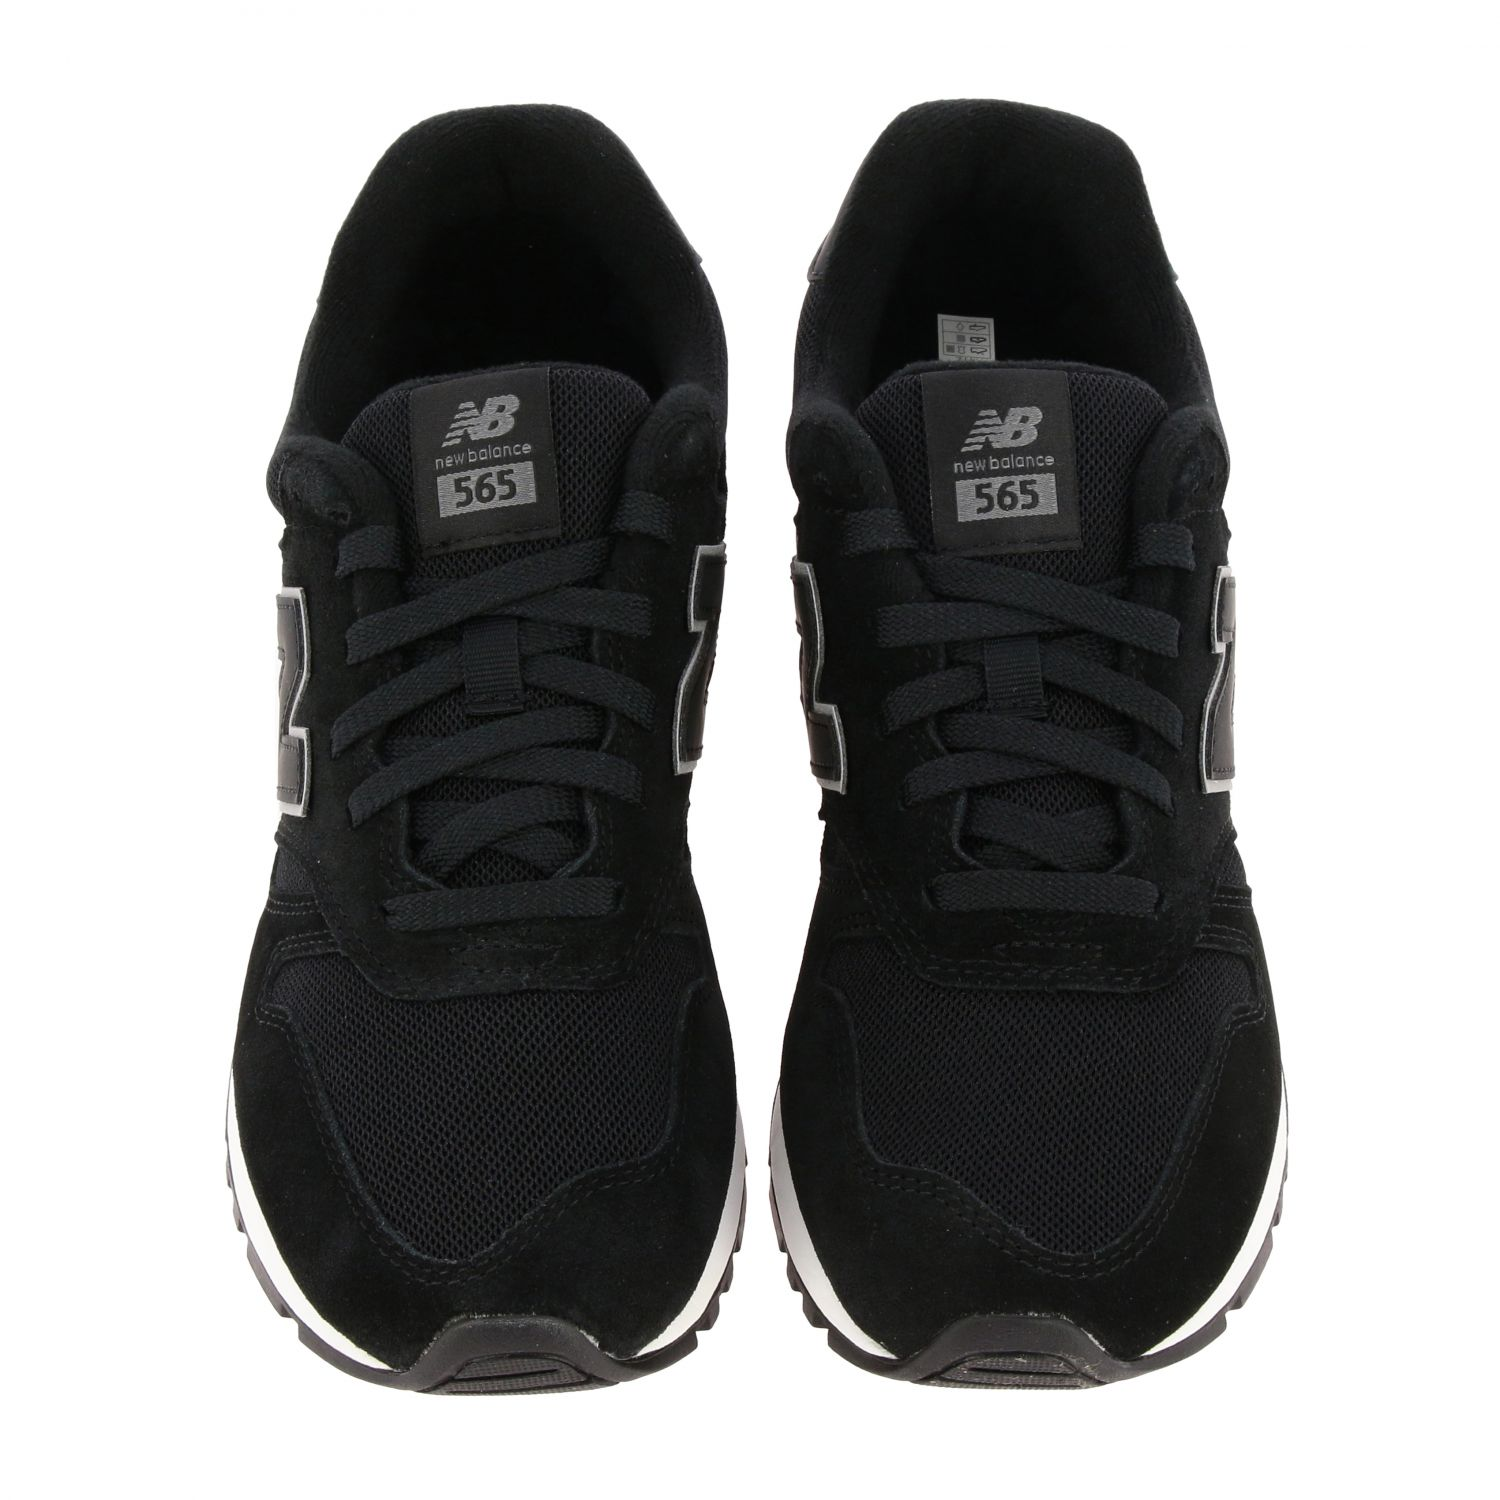 Trainers New Balance: Shoes men New Balance black 3